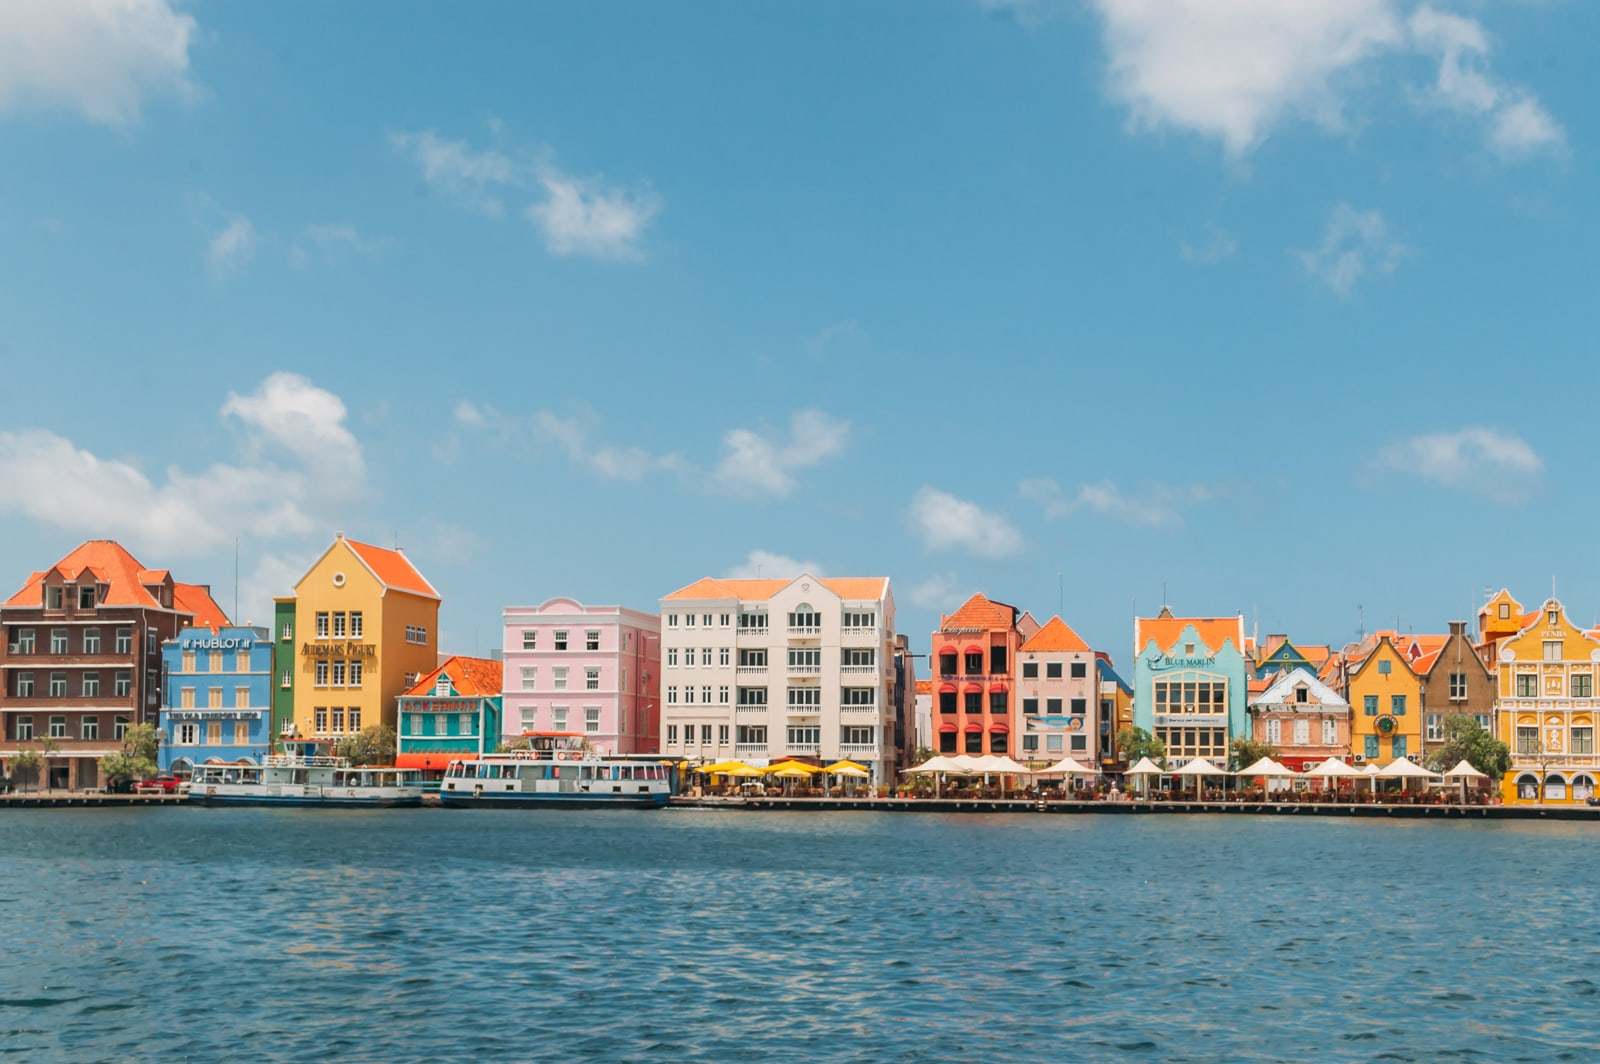 The colorful buildings of the Handelskade in Willemstad, Curaçao